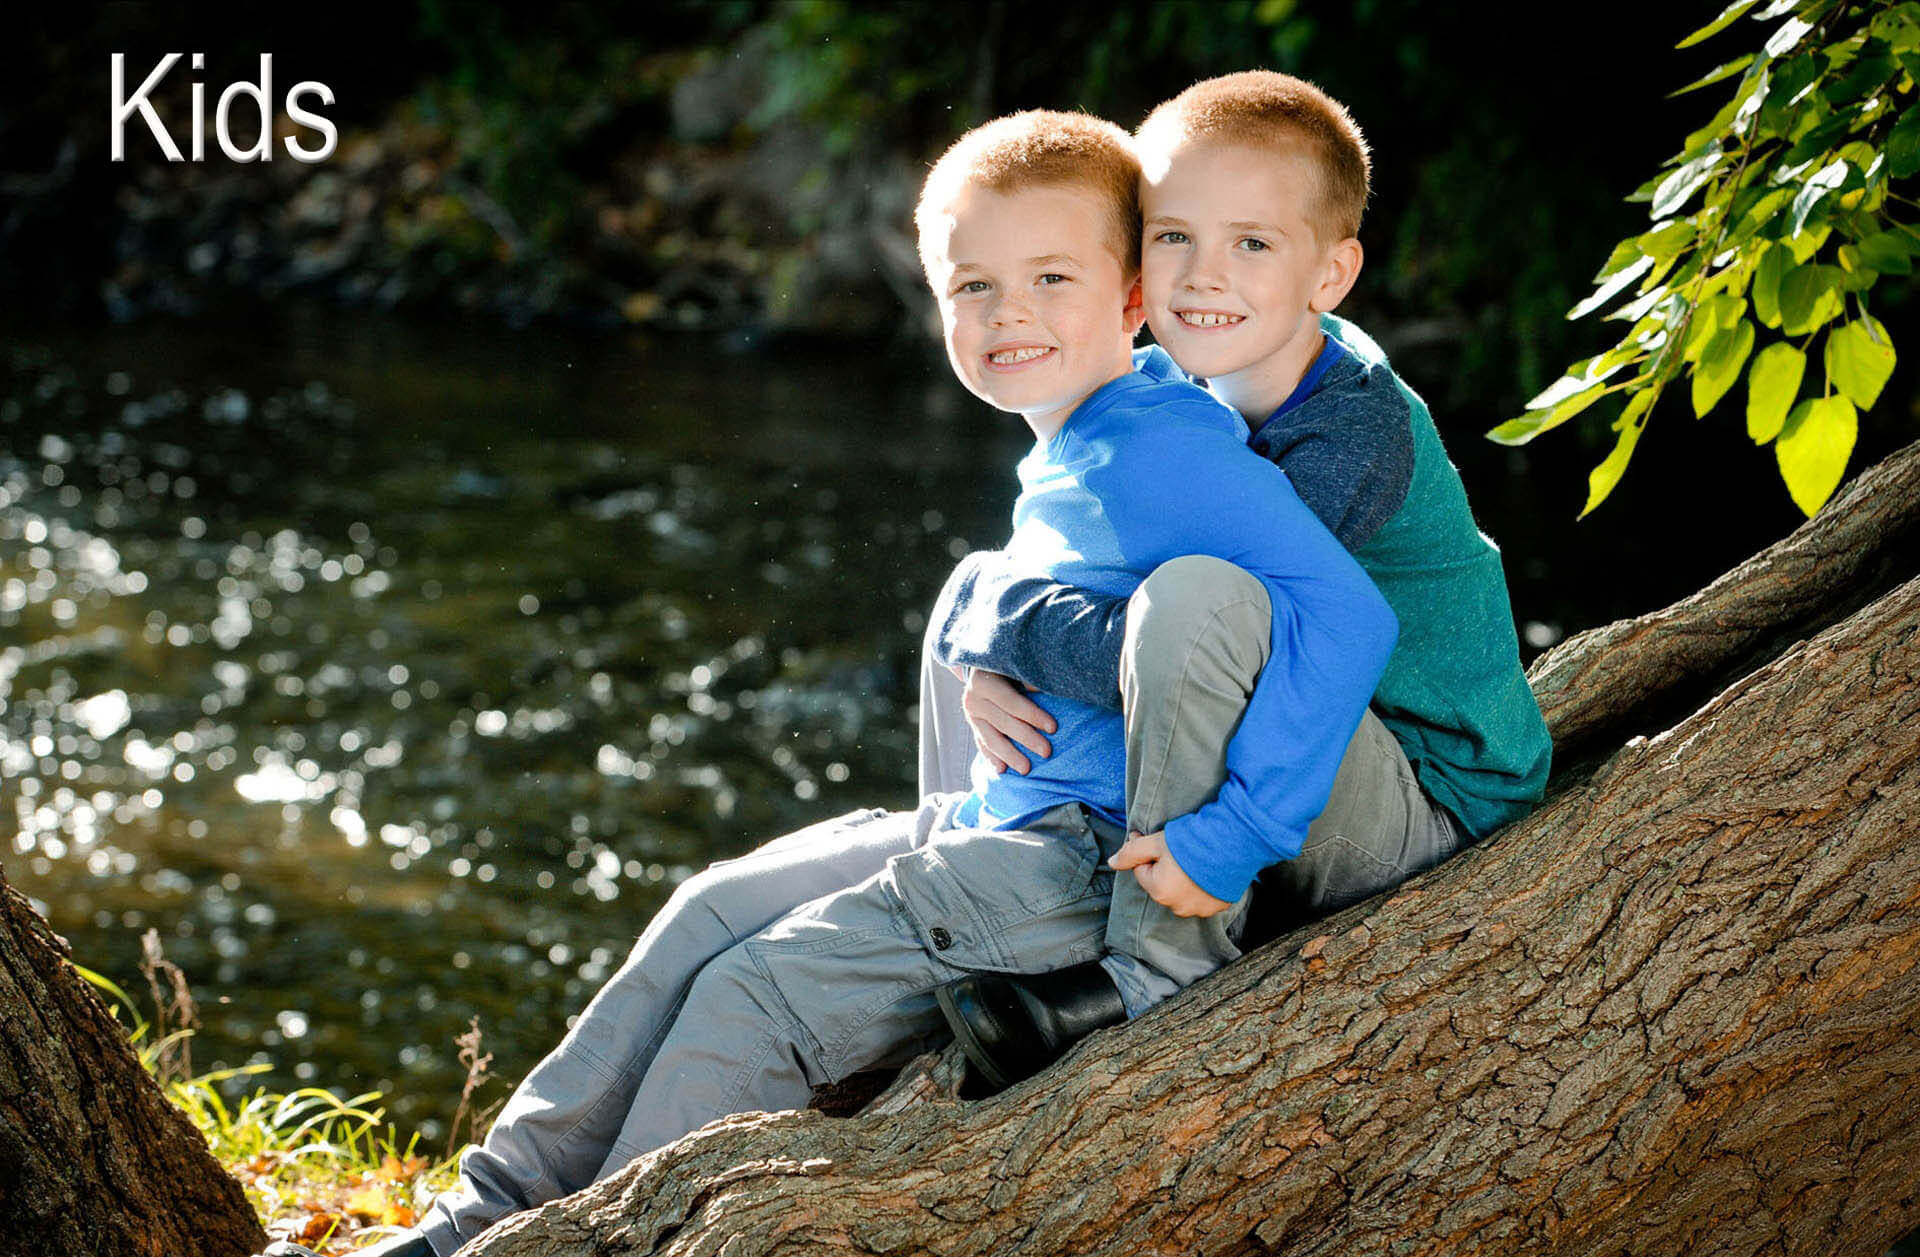 Child photographer Marci Curtis photographs kids in a fun easy going way that showcases their personalities and relationships with each other in the Troy, Michigan area.